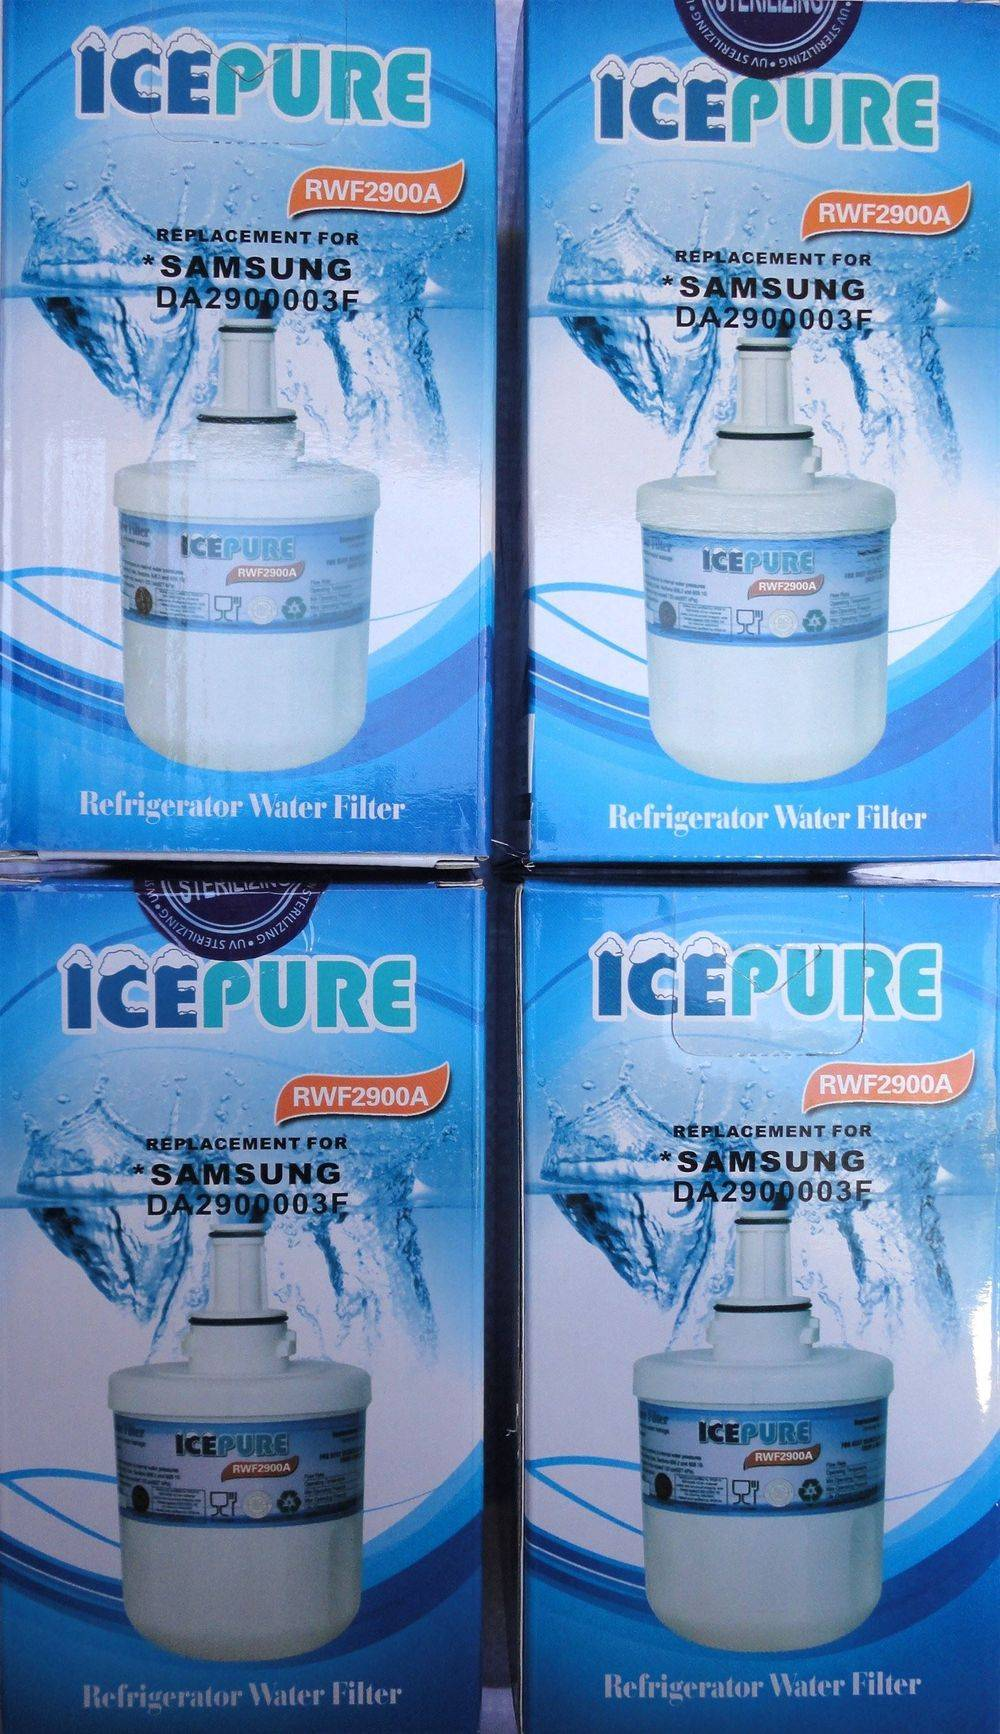 IcePure RFC2900A - RWF2900A - replacement refrigerator fridge ice water filter cartridge for Samsung Aqua-Pure Plus DA29-00003F - HAFIN1/EXP - DA97-06317A-B - sold & stocked at www.aaafilterfast.com